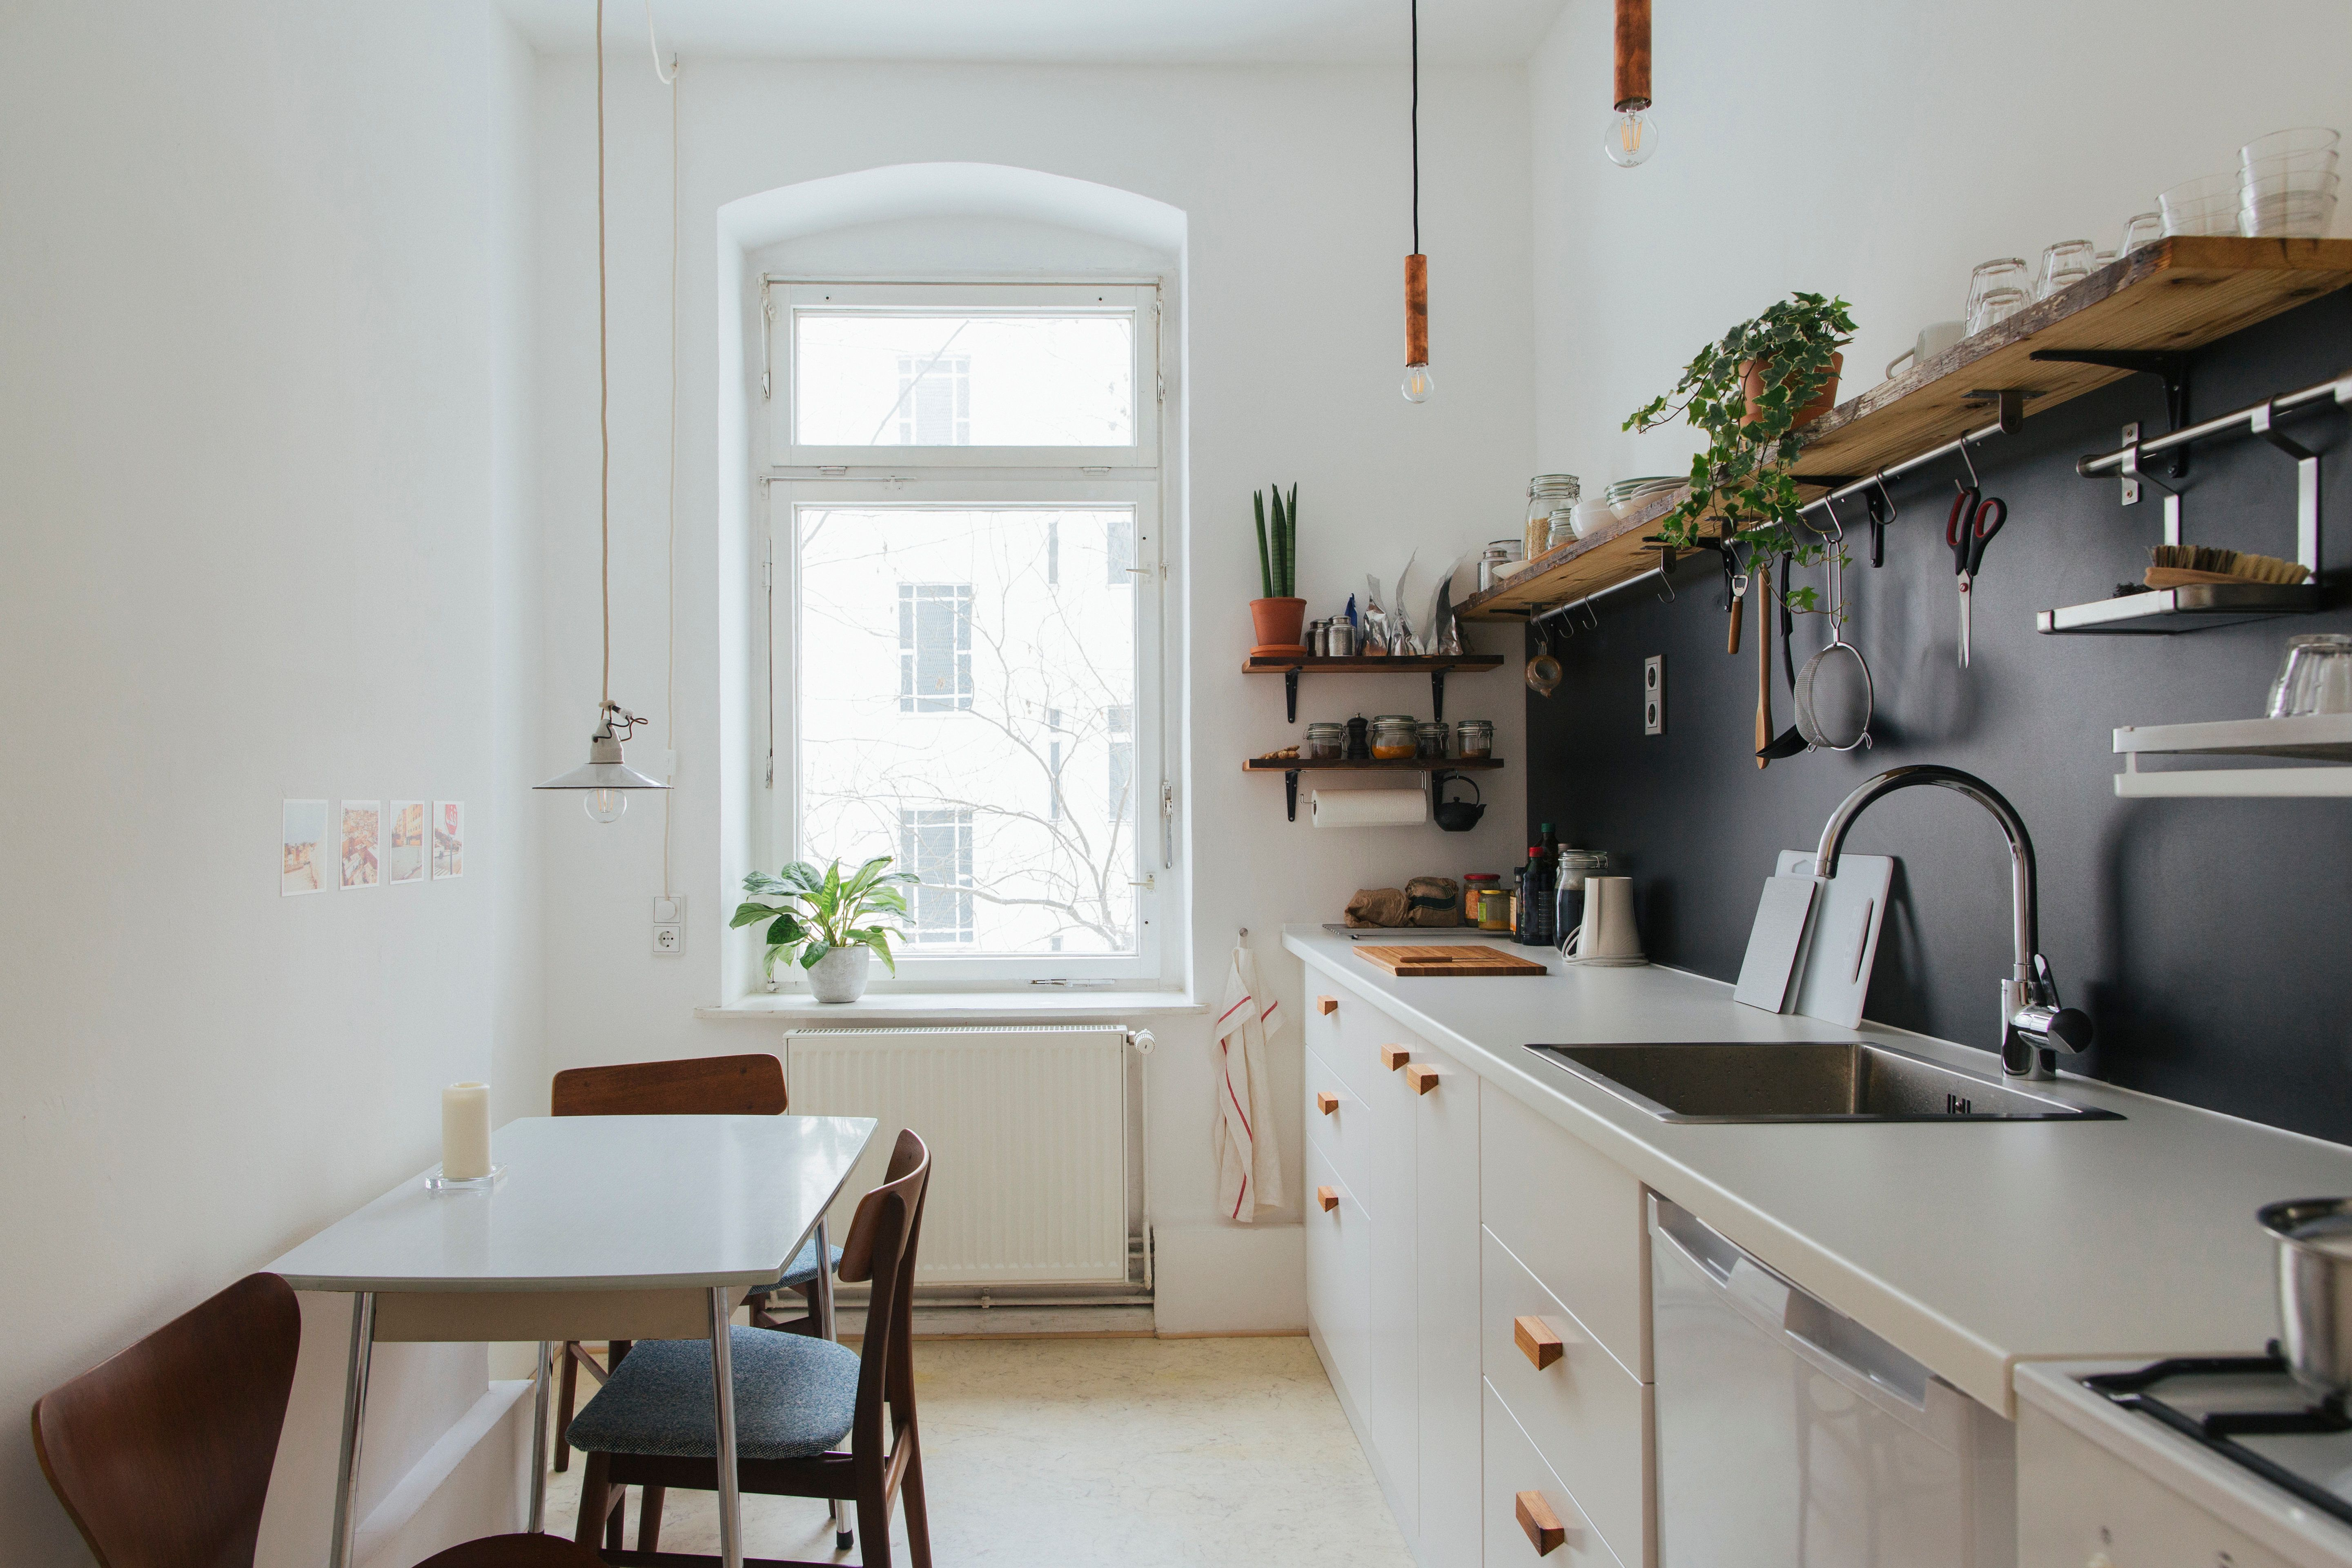 15 minimalist home decor stores for decorating on a budget rh huffpost com